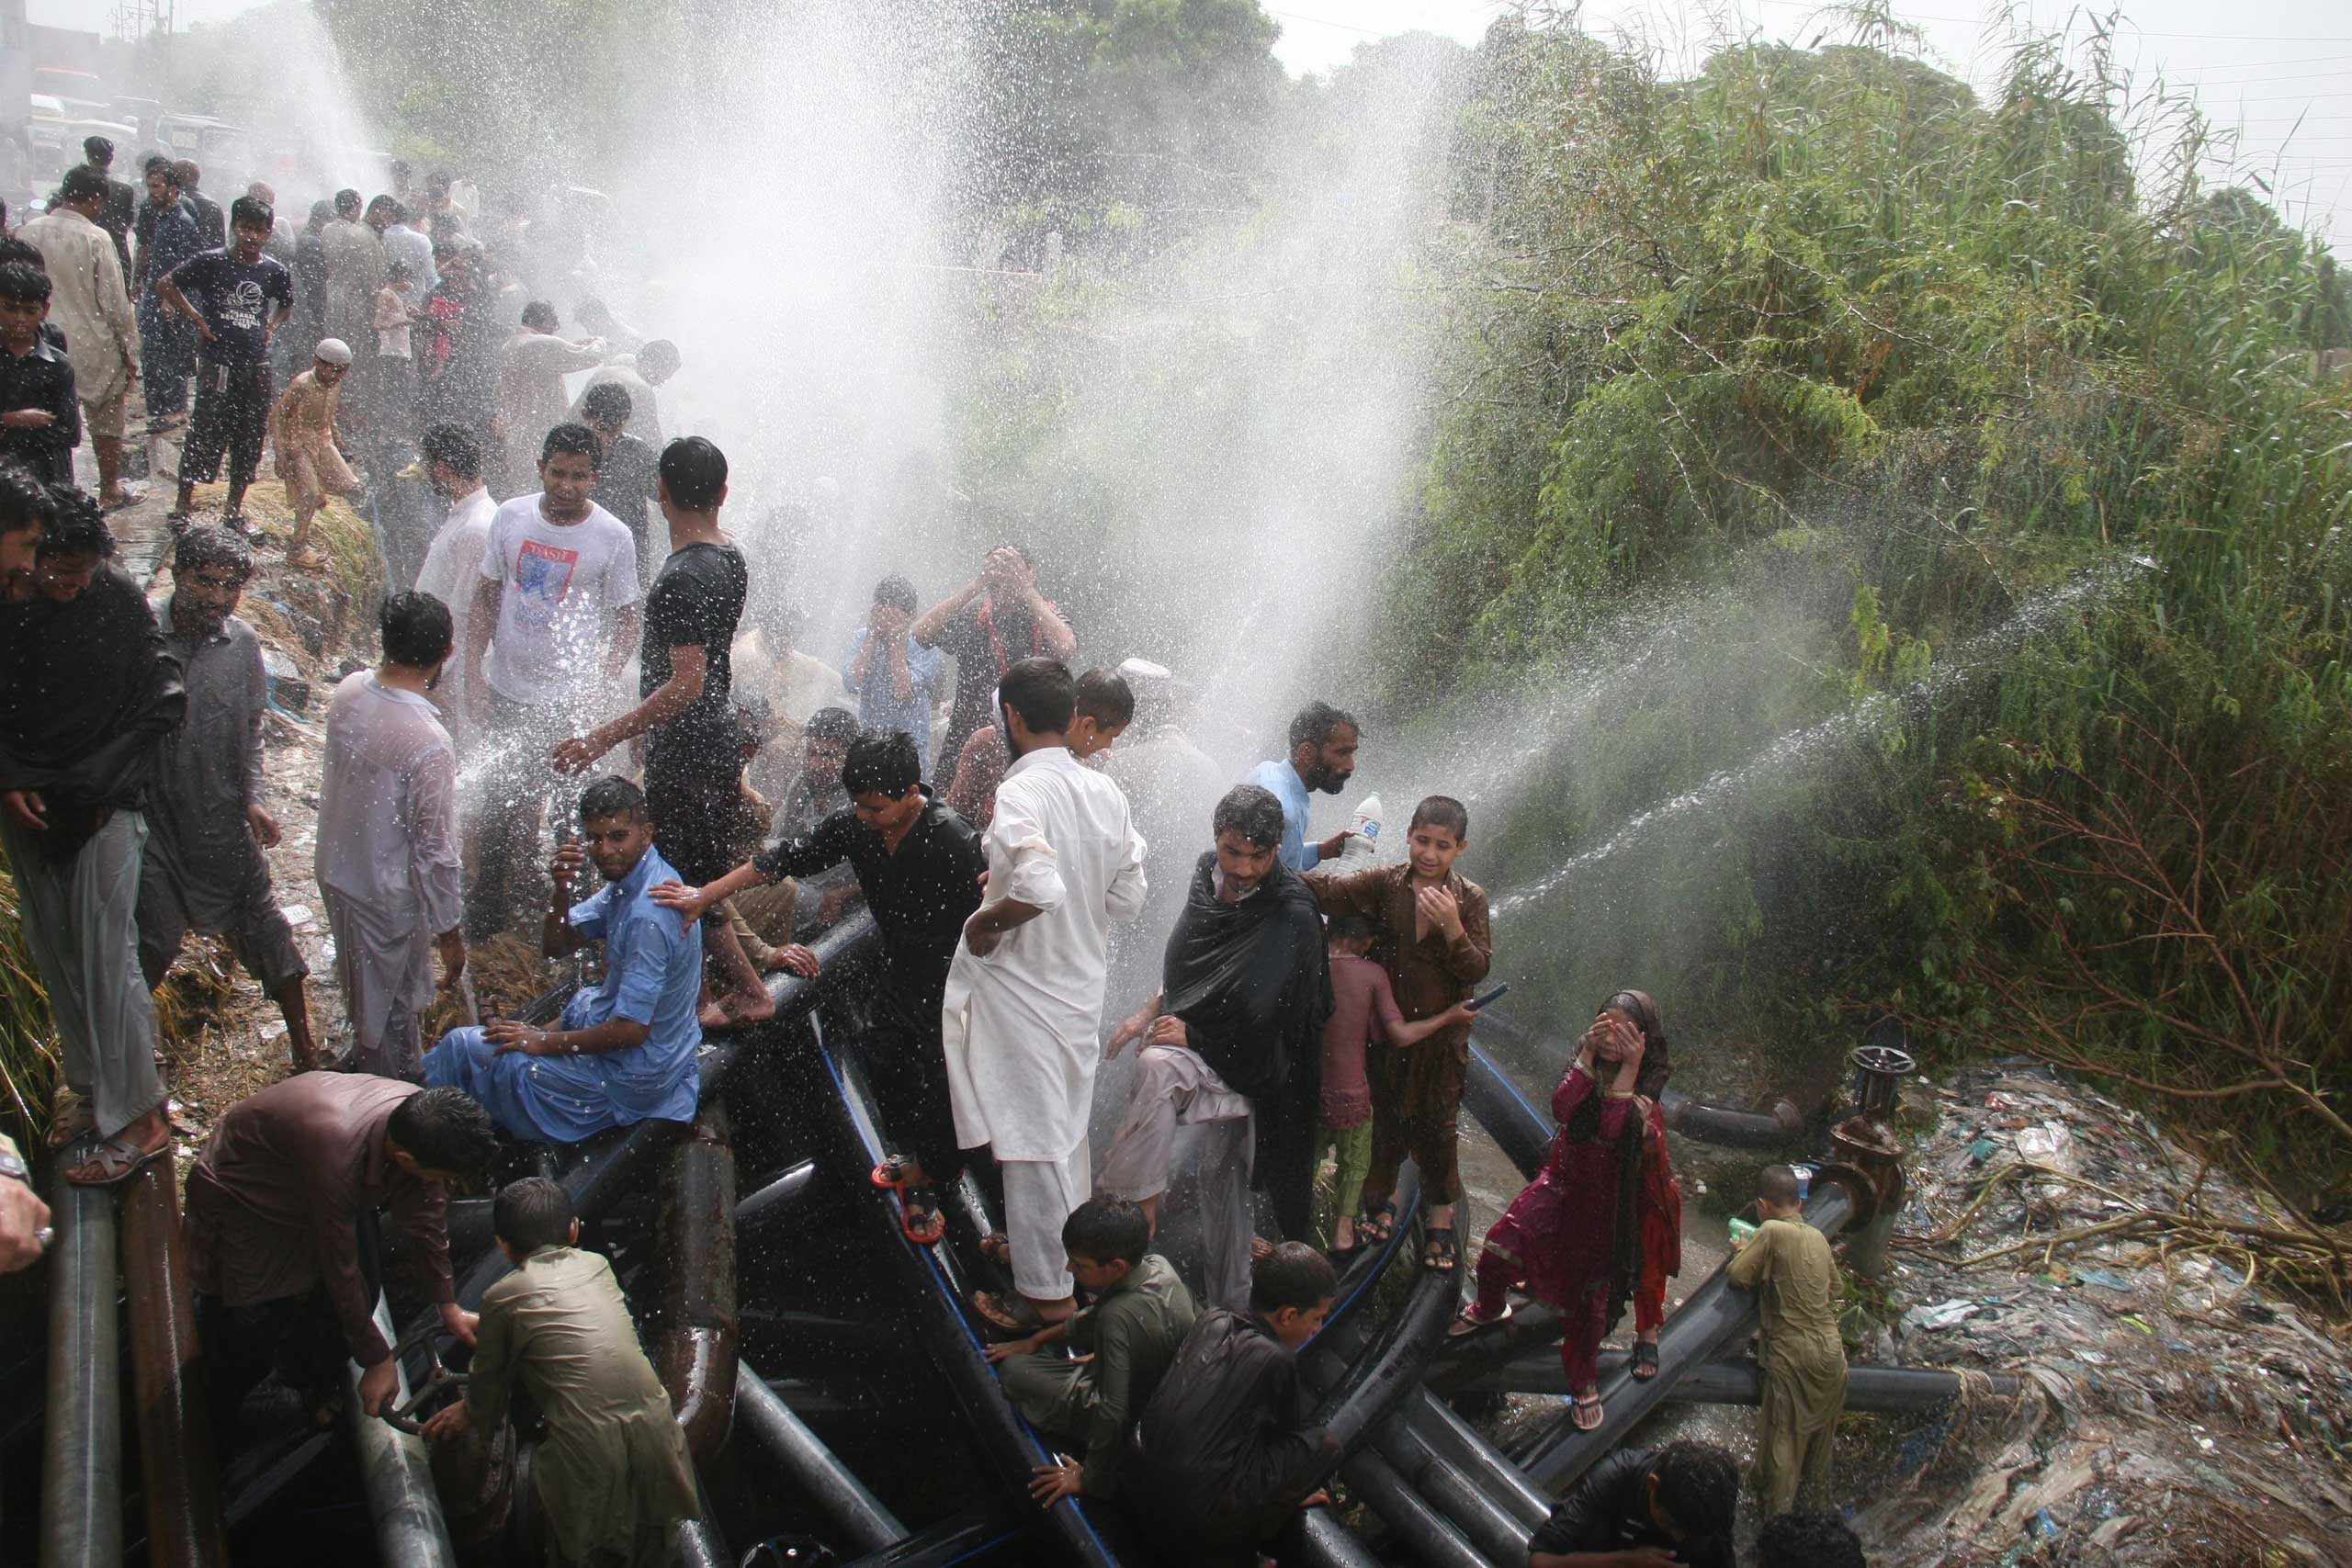 People cool off at water supply pipelines during a heat wave in Karachi, Pakistan, on June 24, 2015.